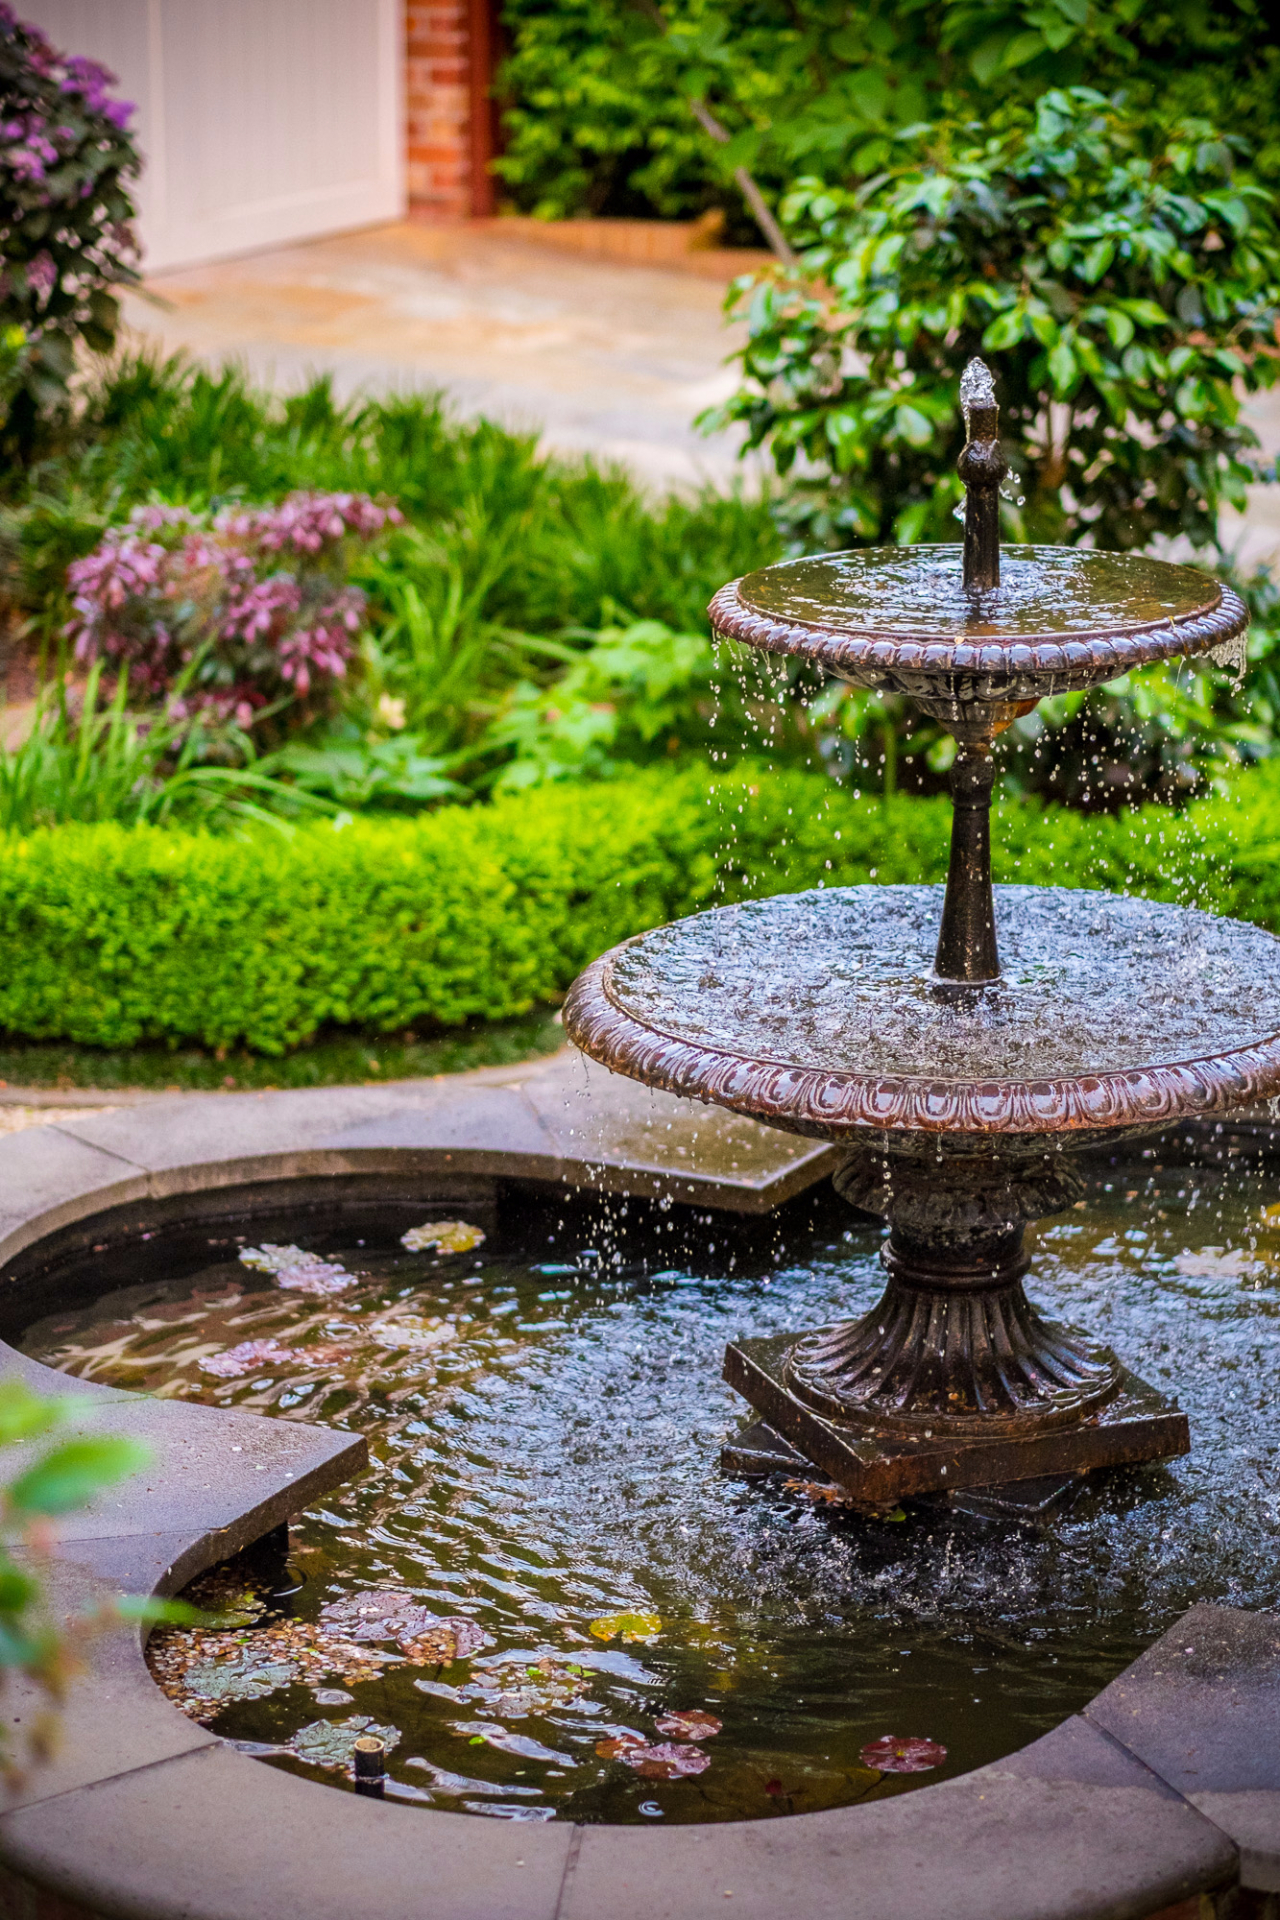 Town Garden with Water Feature